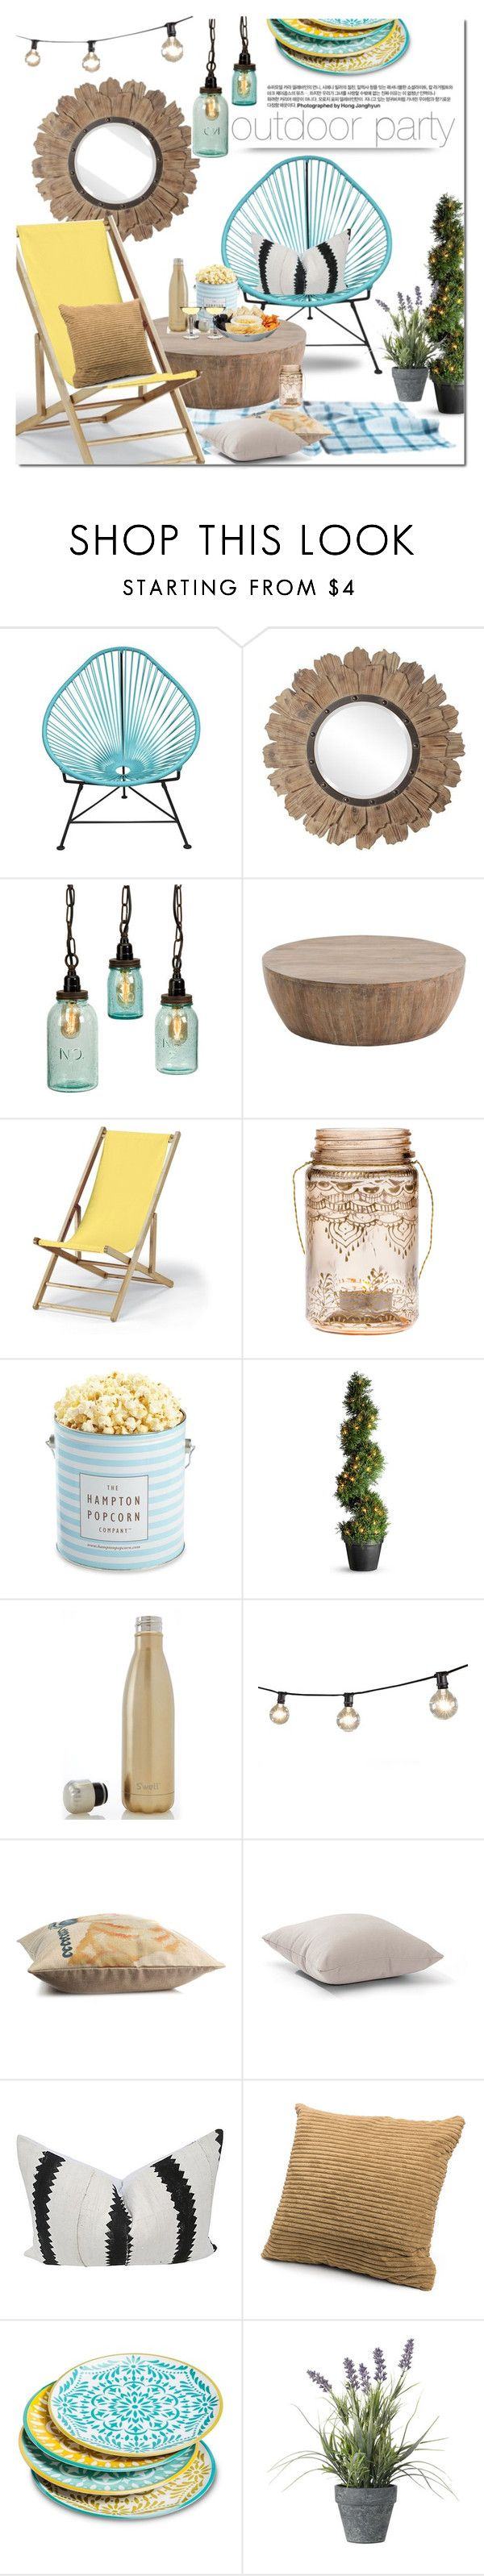 """outdoor party"" by dian-lado ❤ liked on Polyvore featuring interior, interiors, interior design, home, home decor, interior decorating, Innit, Arteriors, Telescope Casual and Cultural Intrigue"